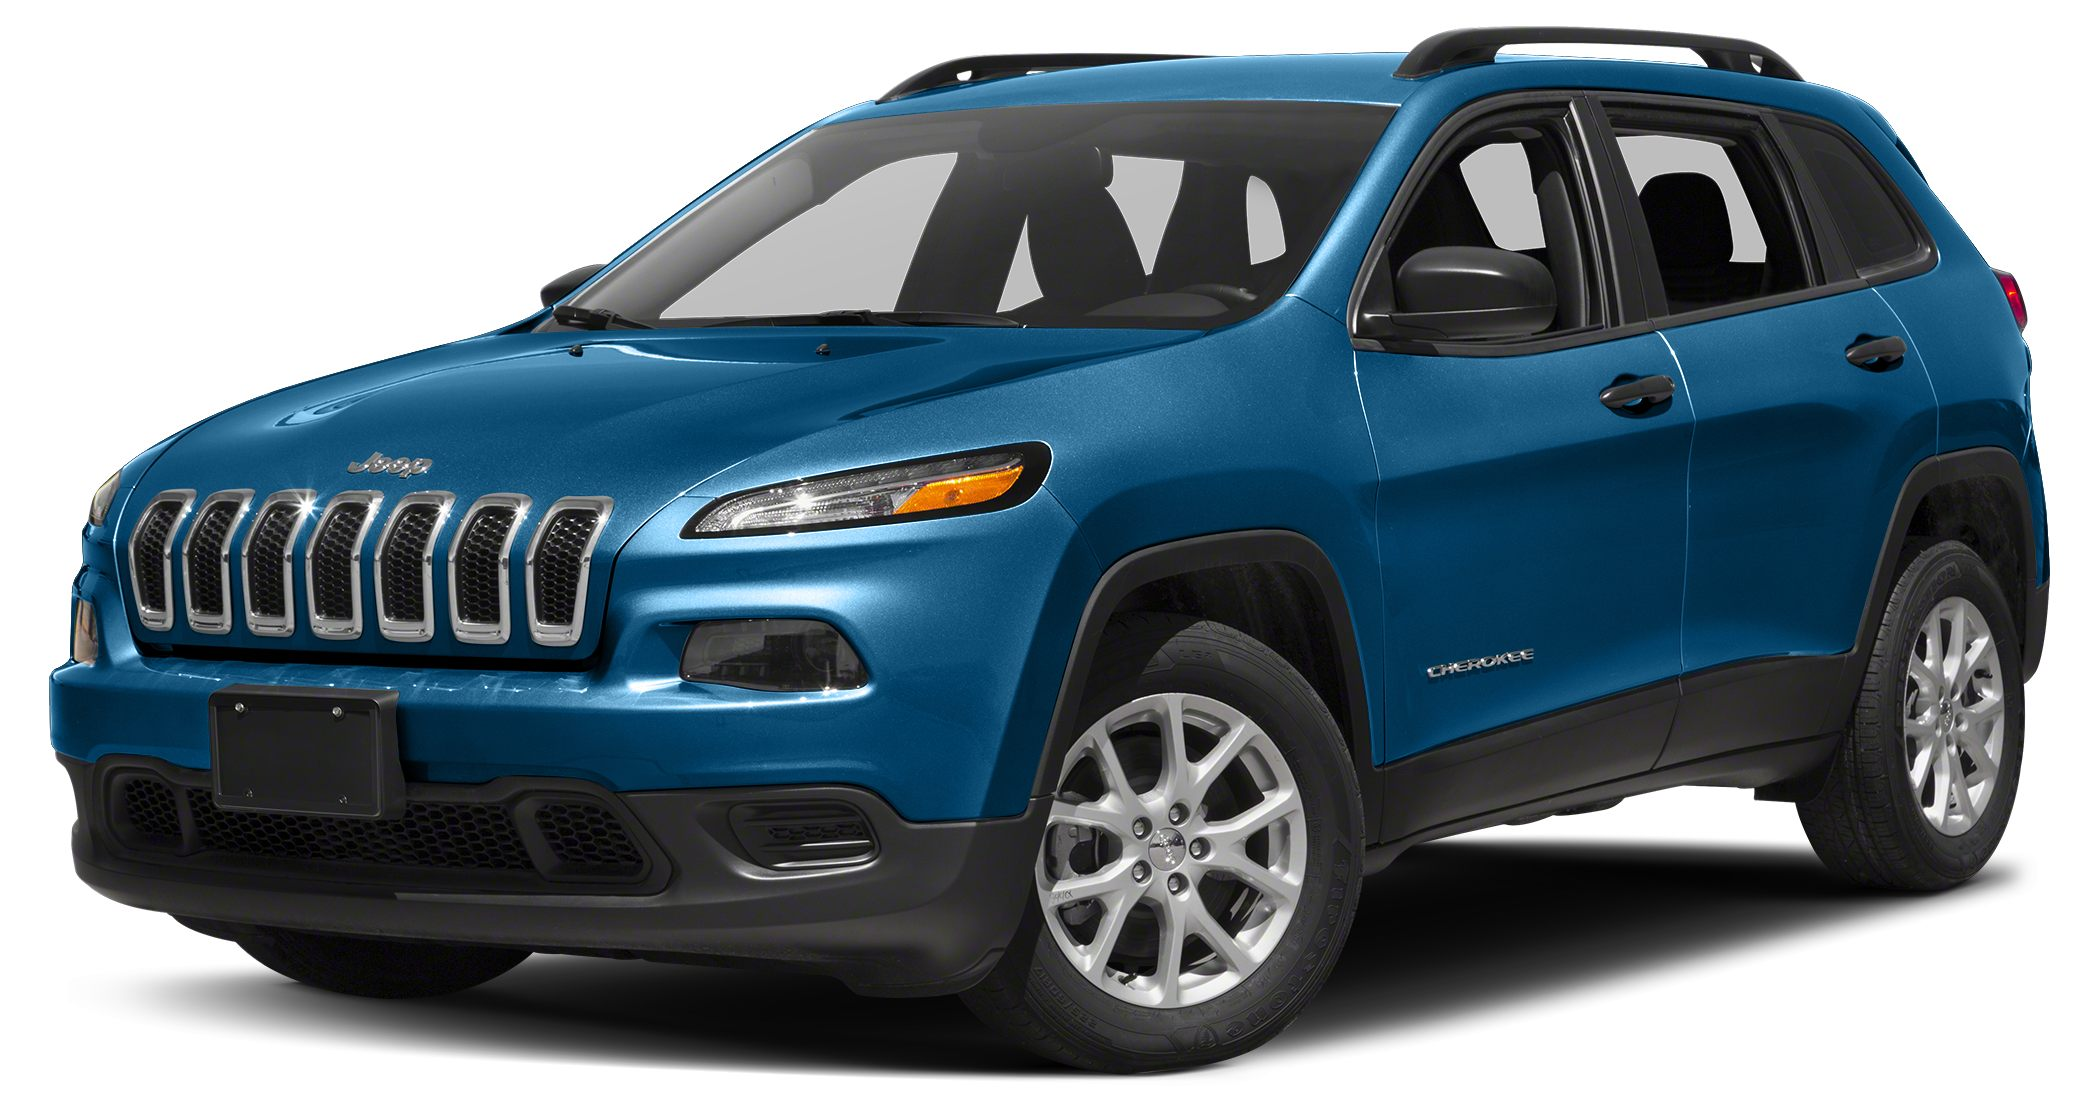 2016 Jeep Cherokee Sport Here at Lake Keowee Ford our customers come first and our prices will not